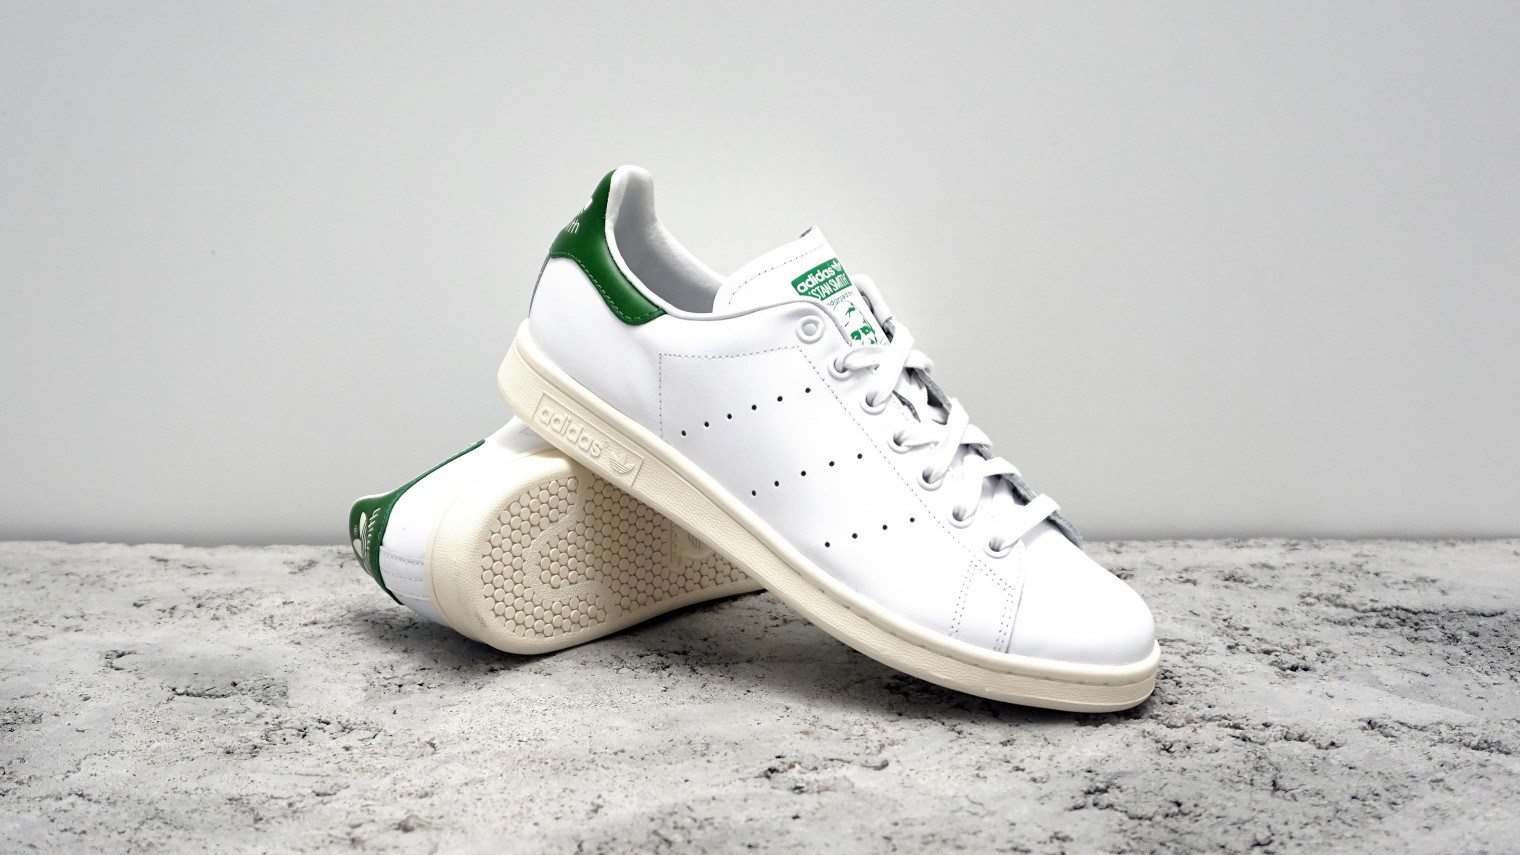 Come indossare e lavare le adidas Stan Smith | Donne Magazine